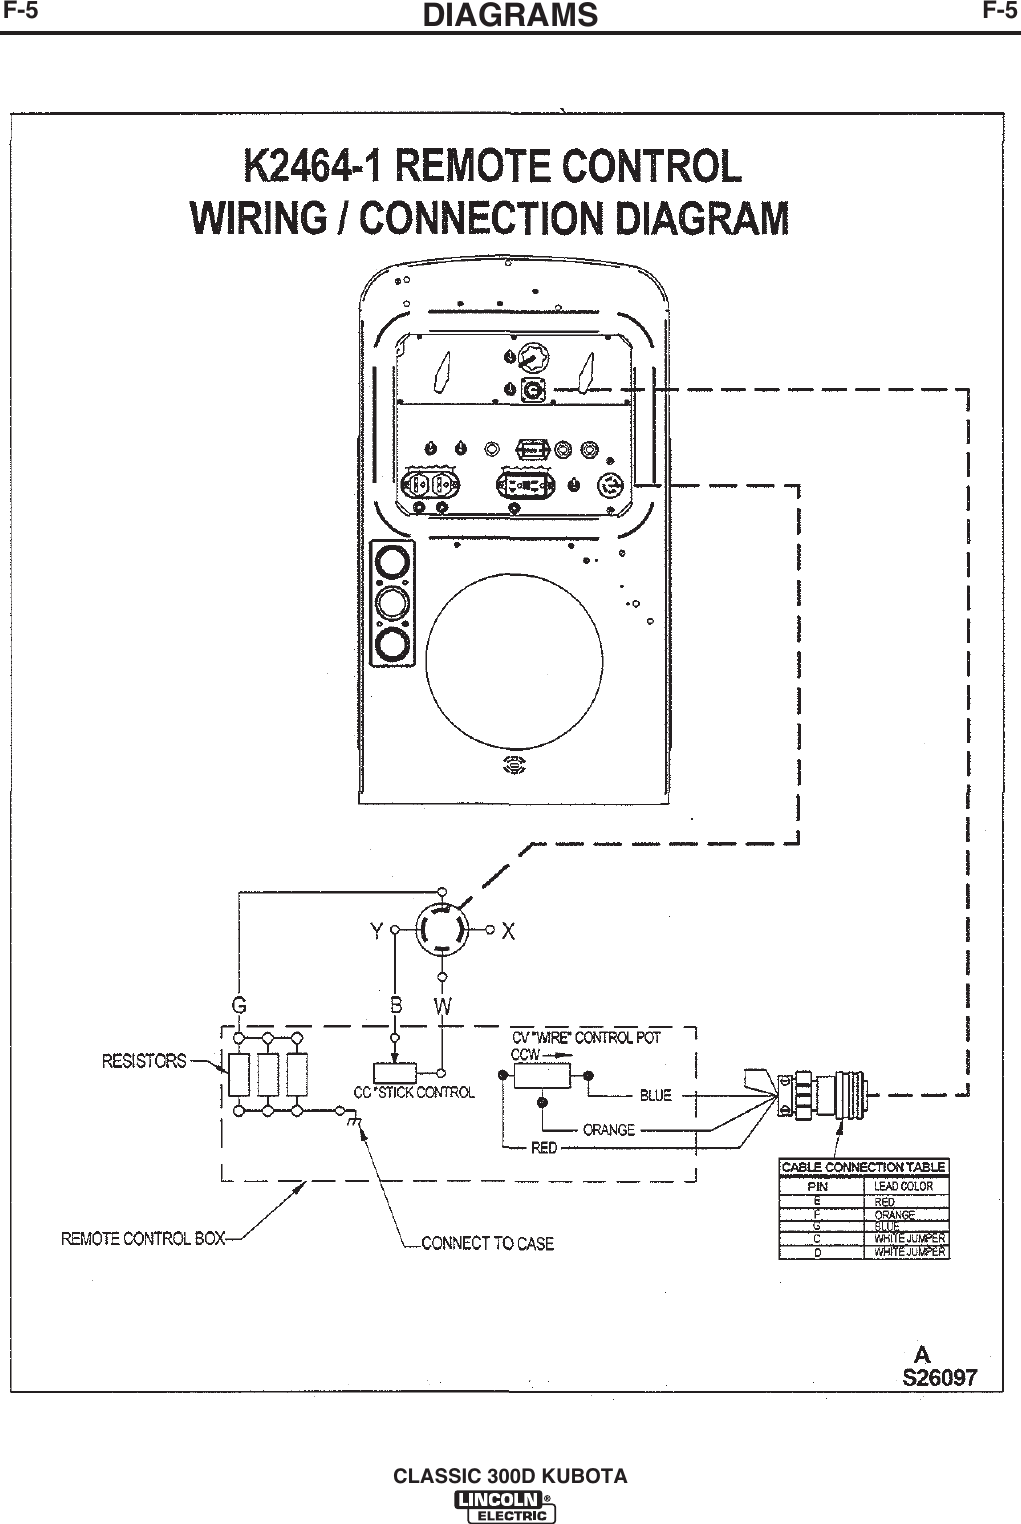 5915A5 E21D0 Lincoln Electric Classic 300D Kubota Im843 C Users ... | Wiring  LibraryWiring Library